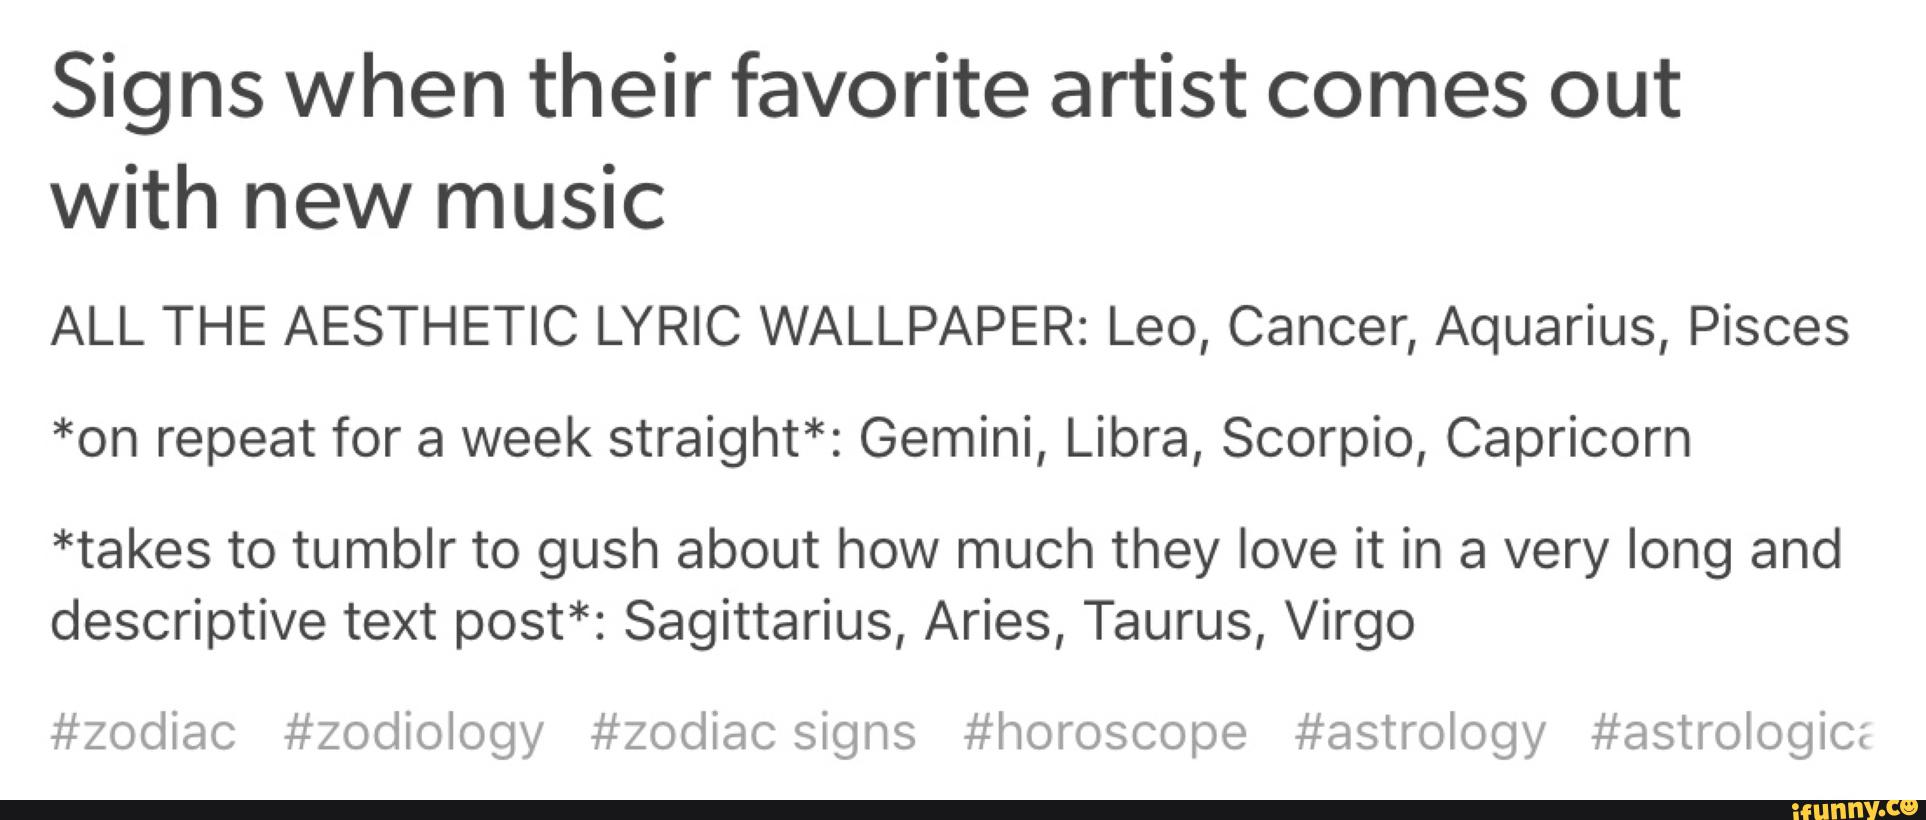 Signs When Their Favorite Artist Comes Out With New Music All The Aesthetic Lyric Wallpaper Leo Cancer Aquarius Pisces On Repeat For A Week Straight Gemini Libra Scorpio Capricorn Takes To Tumblr